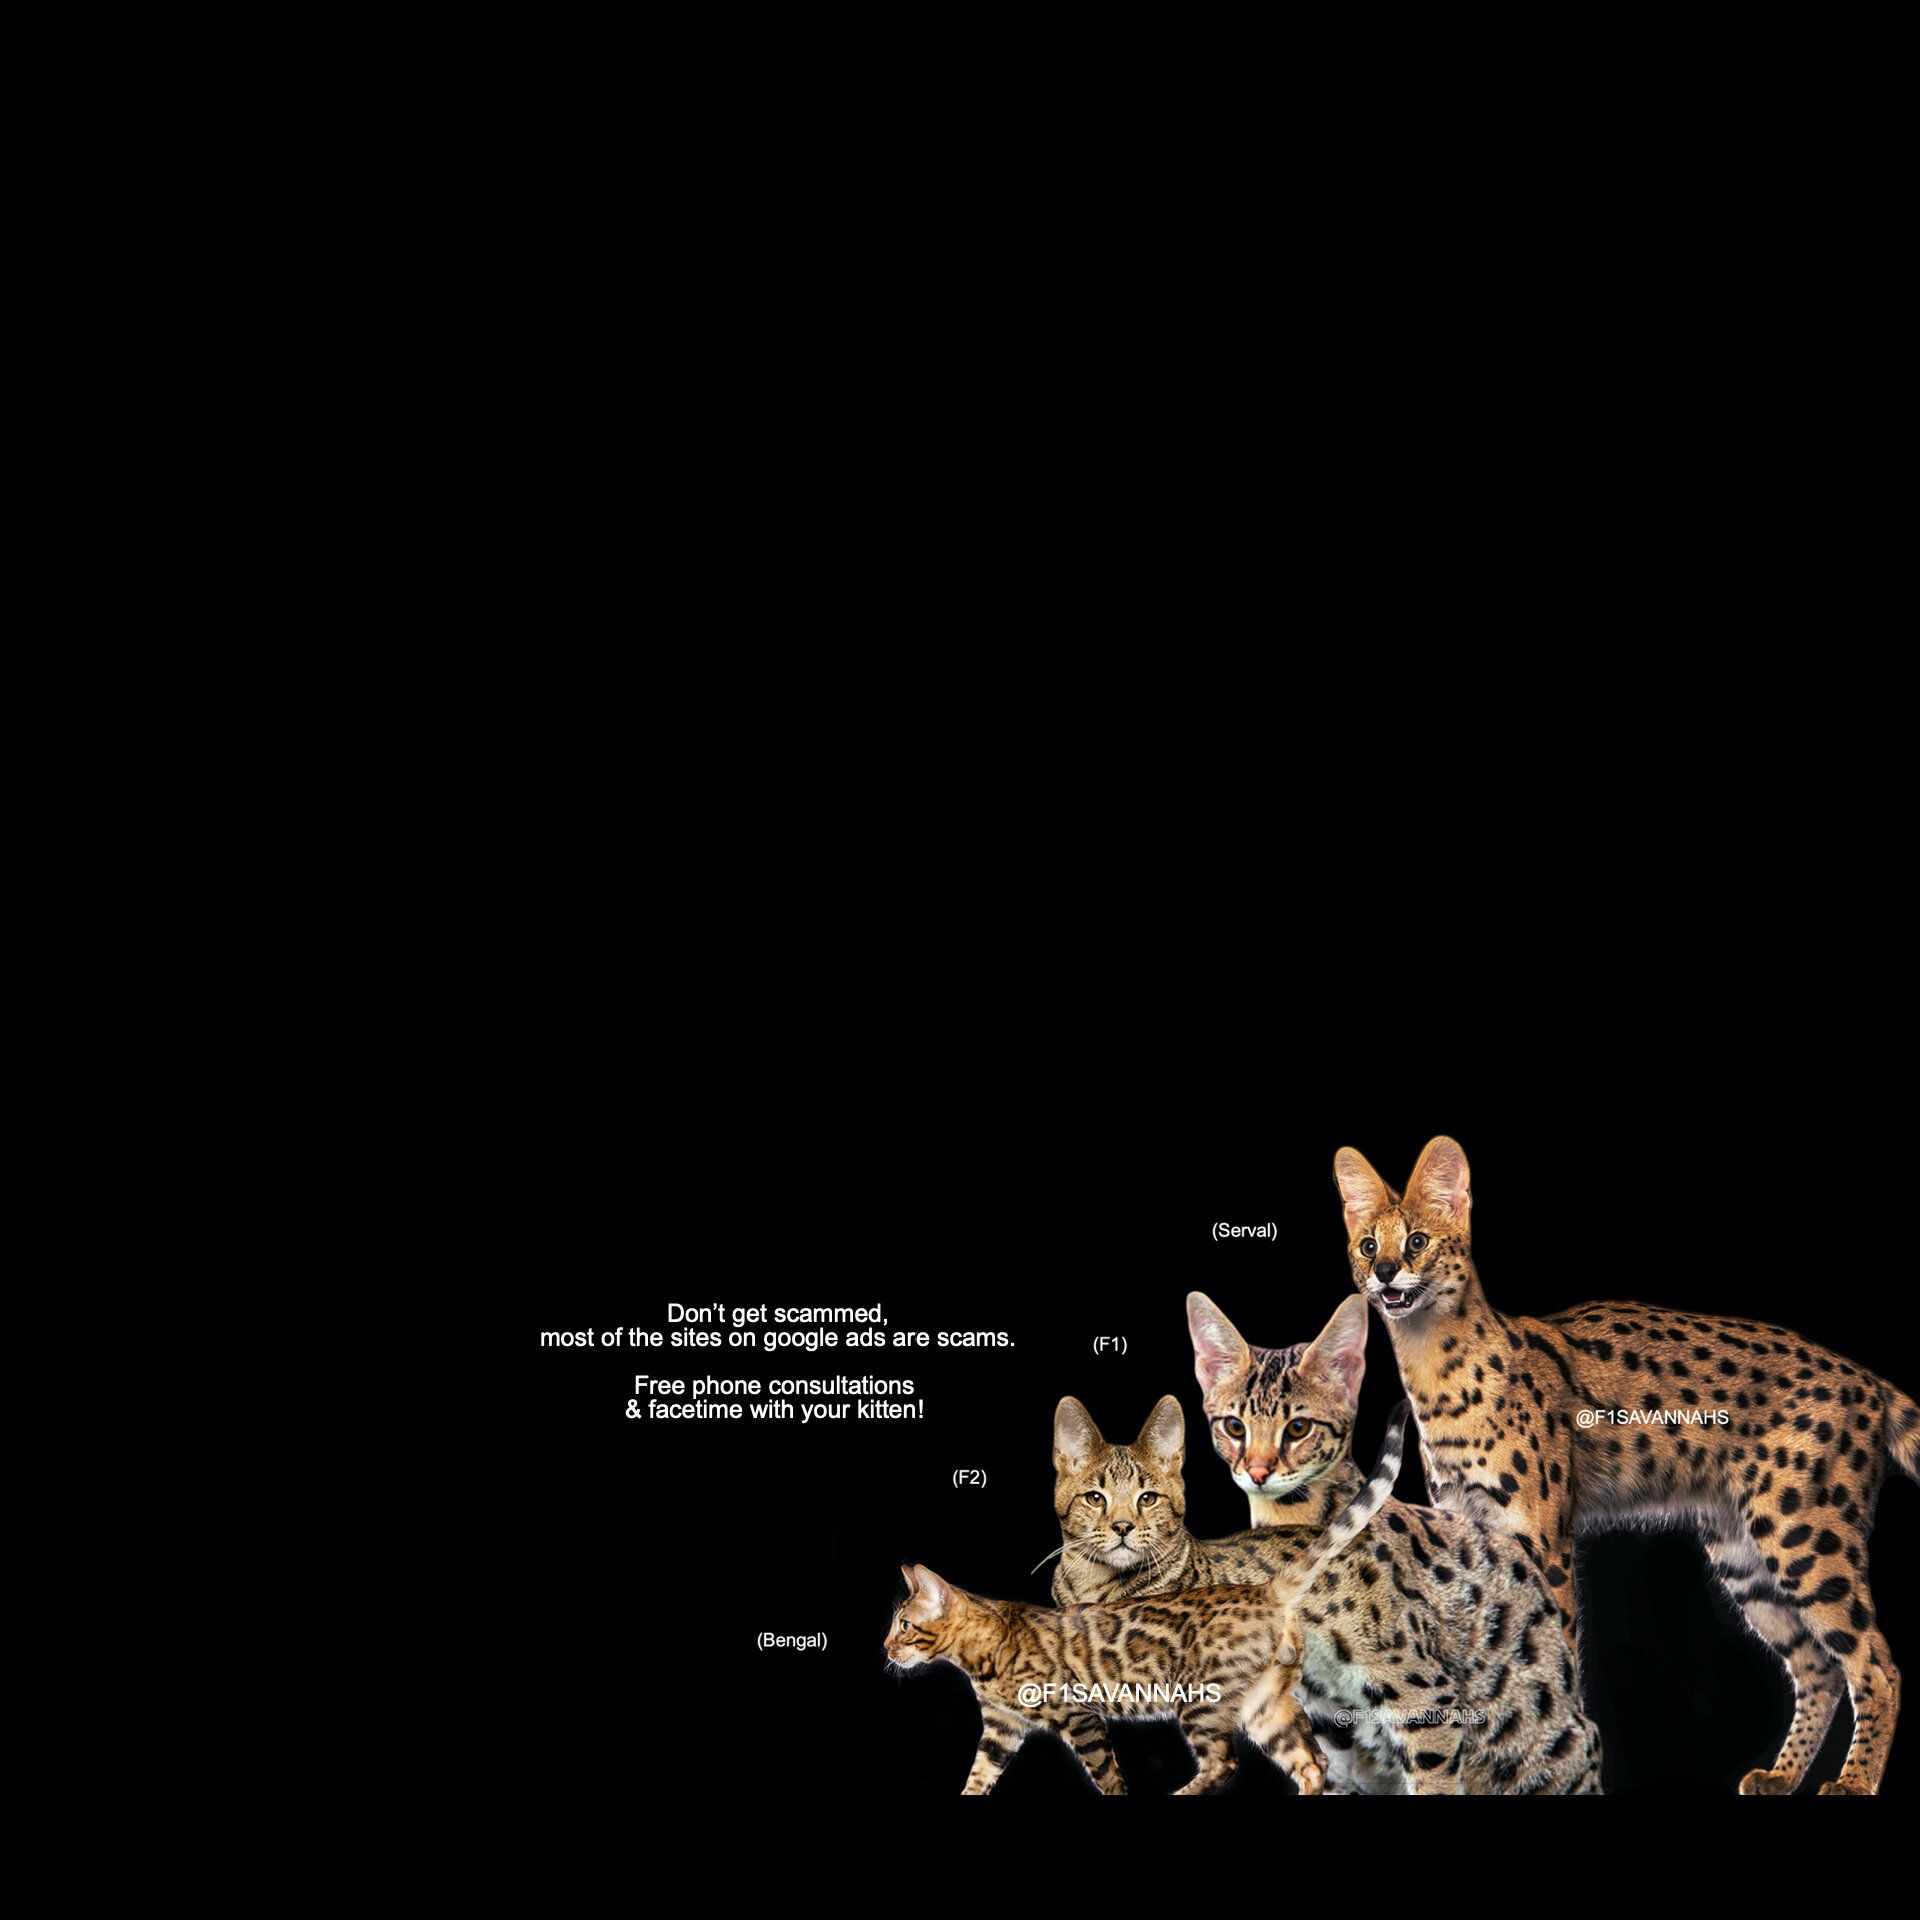 F1 Savannah Cat And Kitten Breeder For Sale In Los Angeles In 2020 Savannah Cat Cats And Kittens Savannah Chat